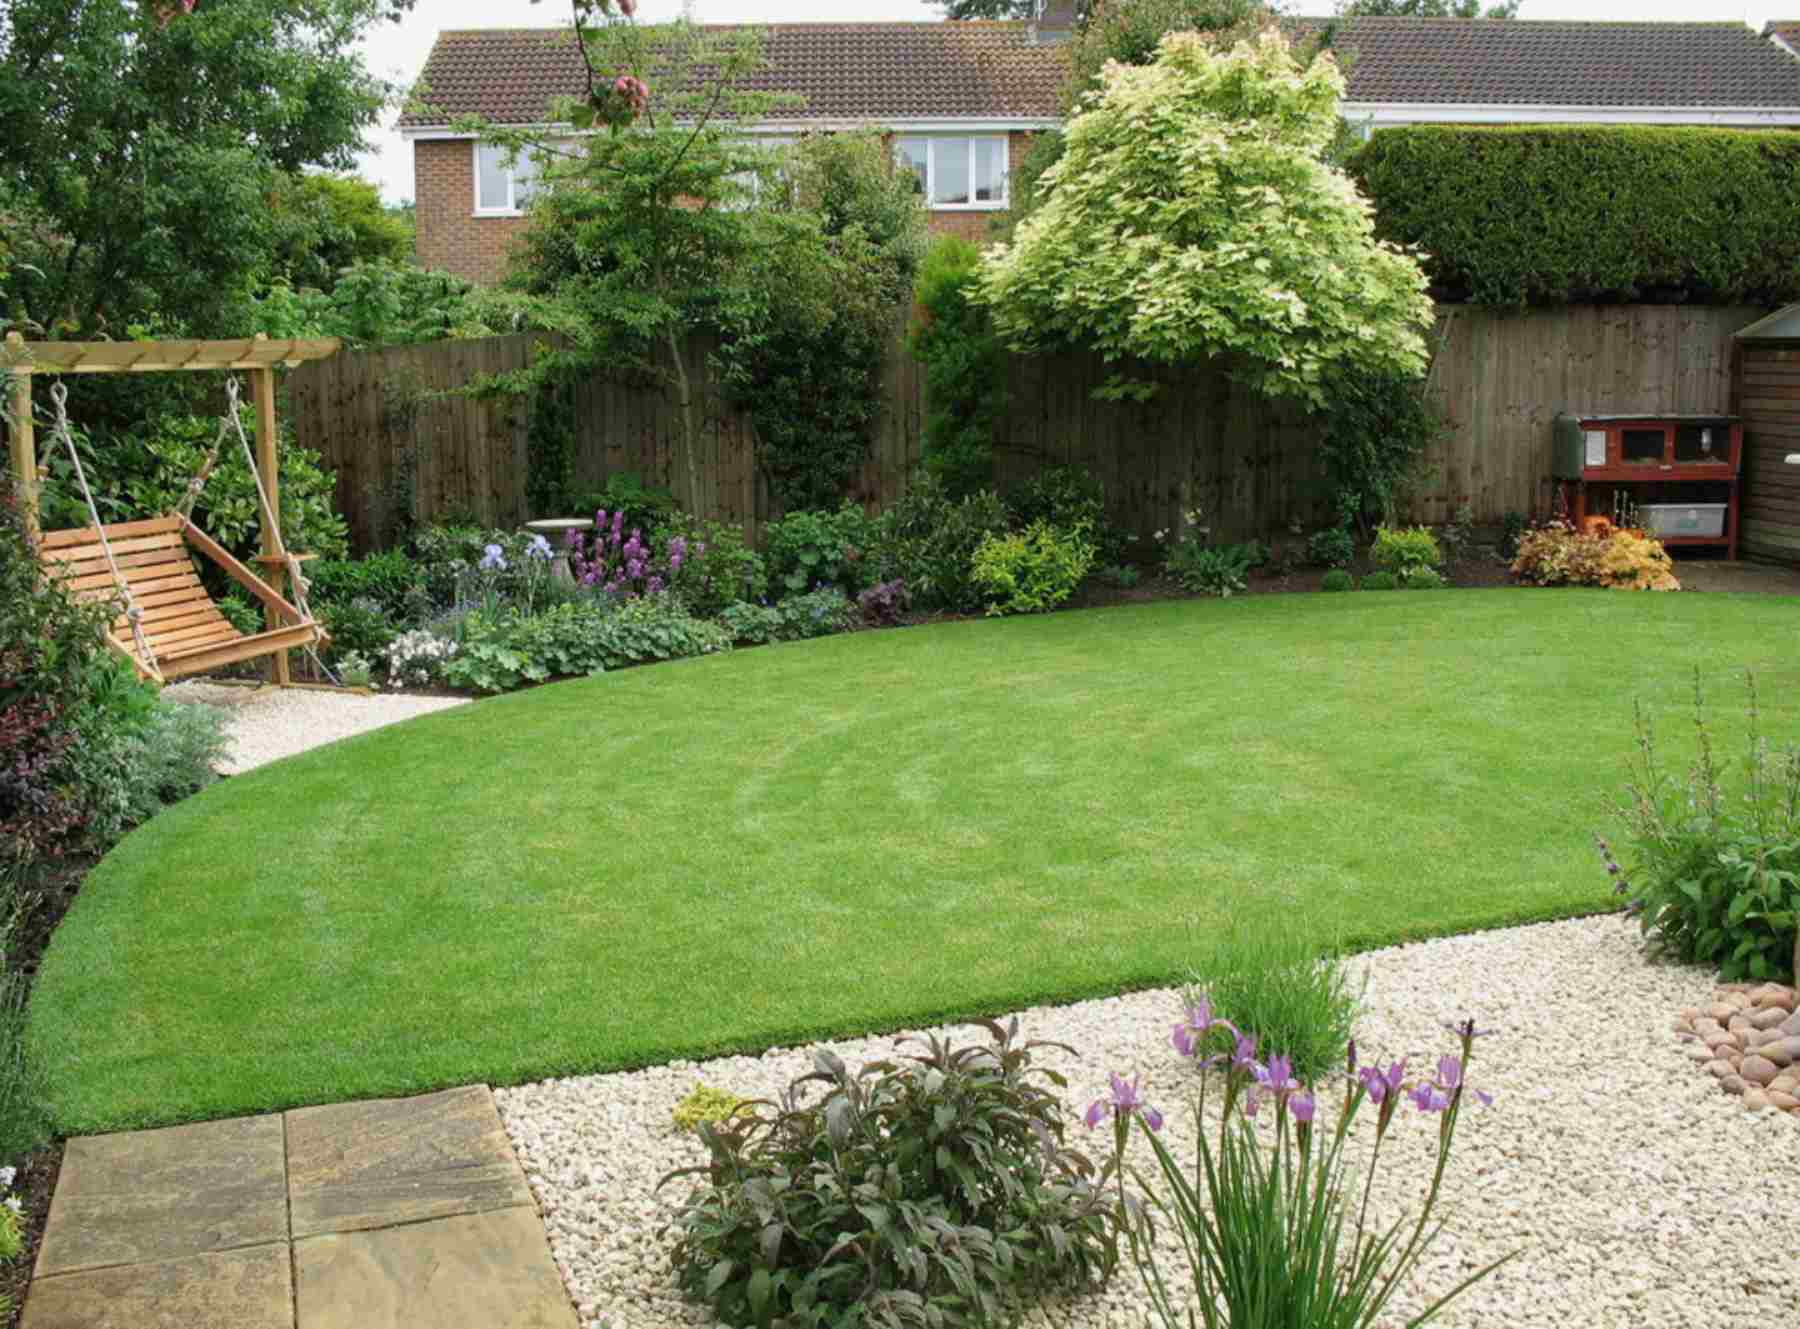 49 backyard landscaping ideas to